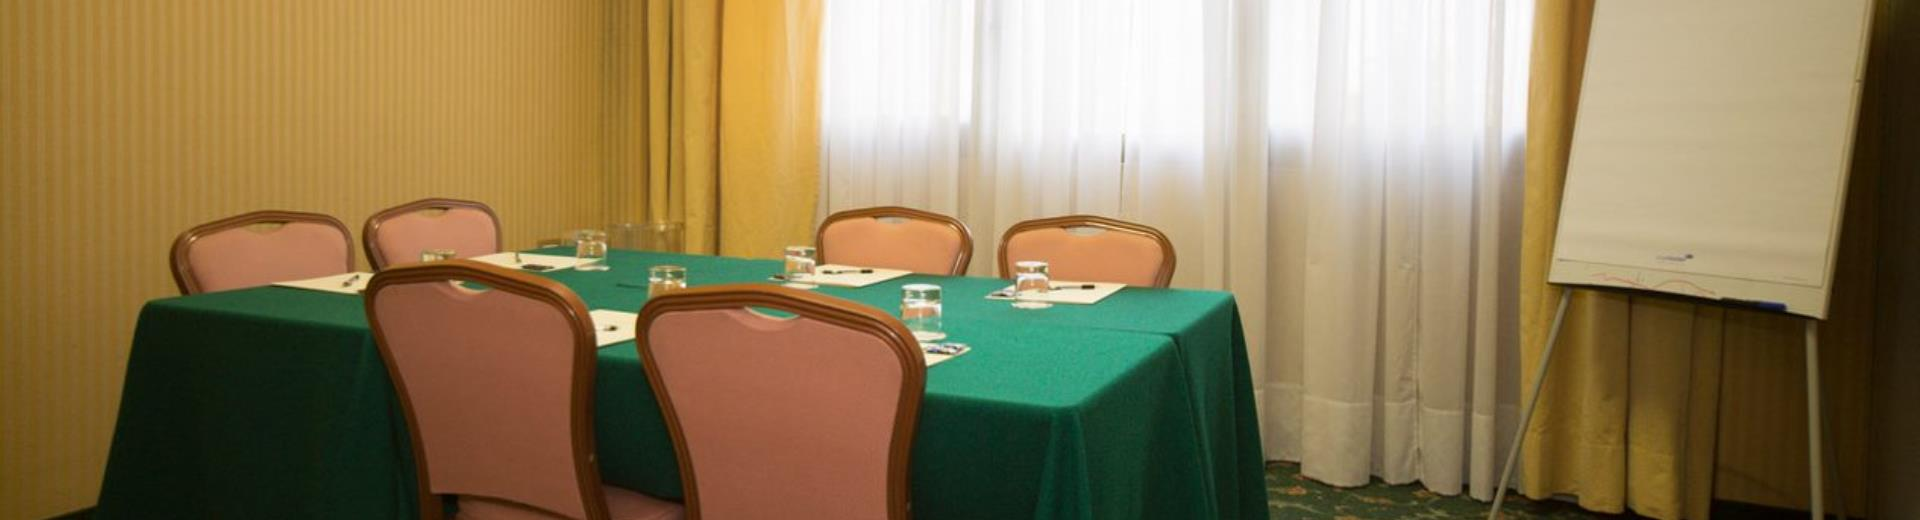 The meeting rooms of Air Hotel Linate are also ideal BW for small meetings: contact us to reserve your meeting!